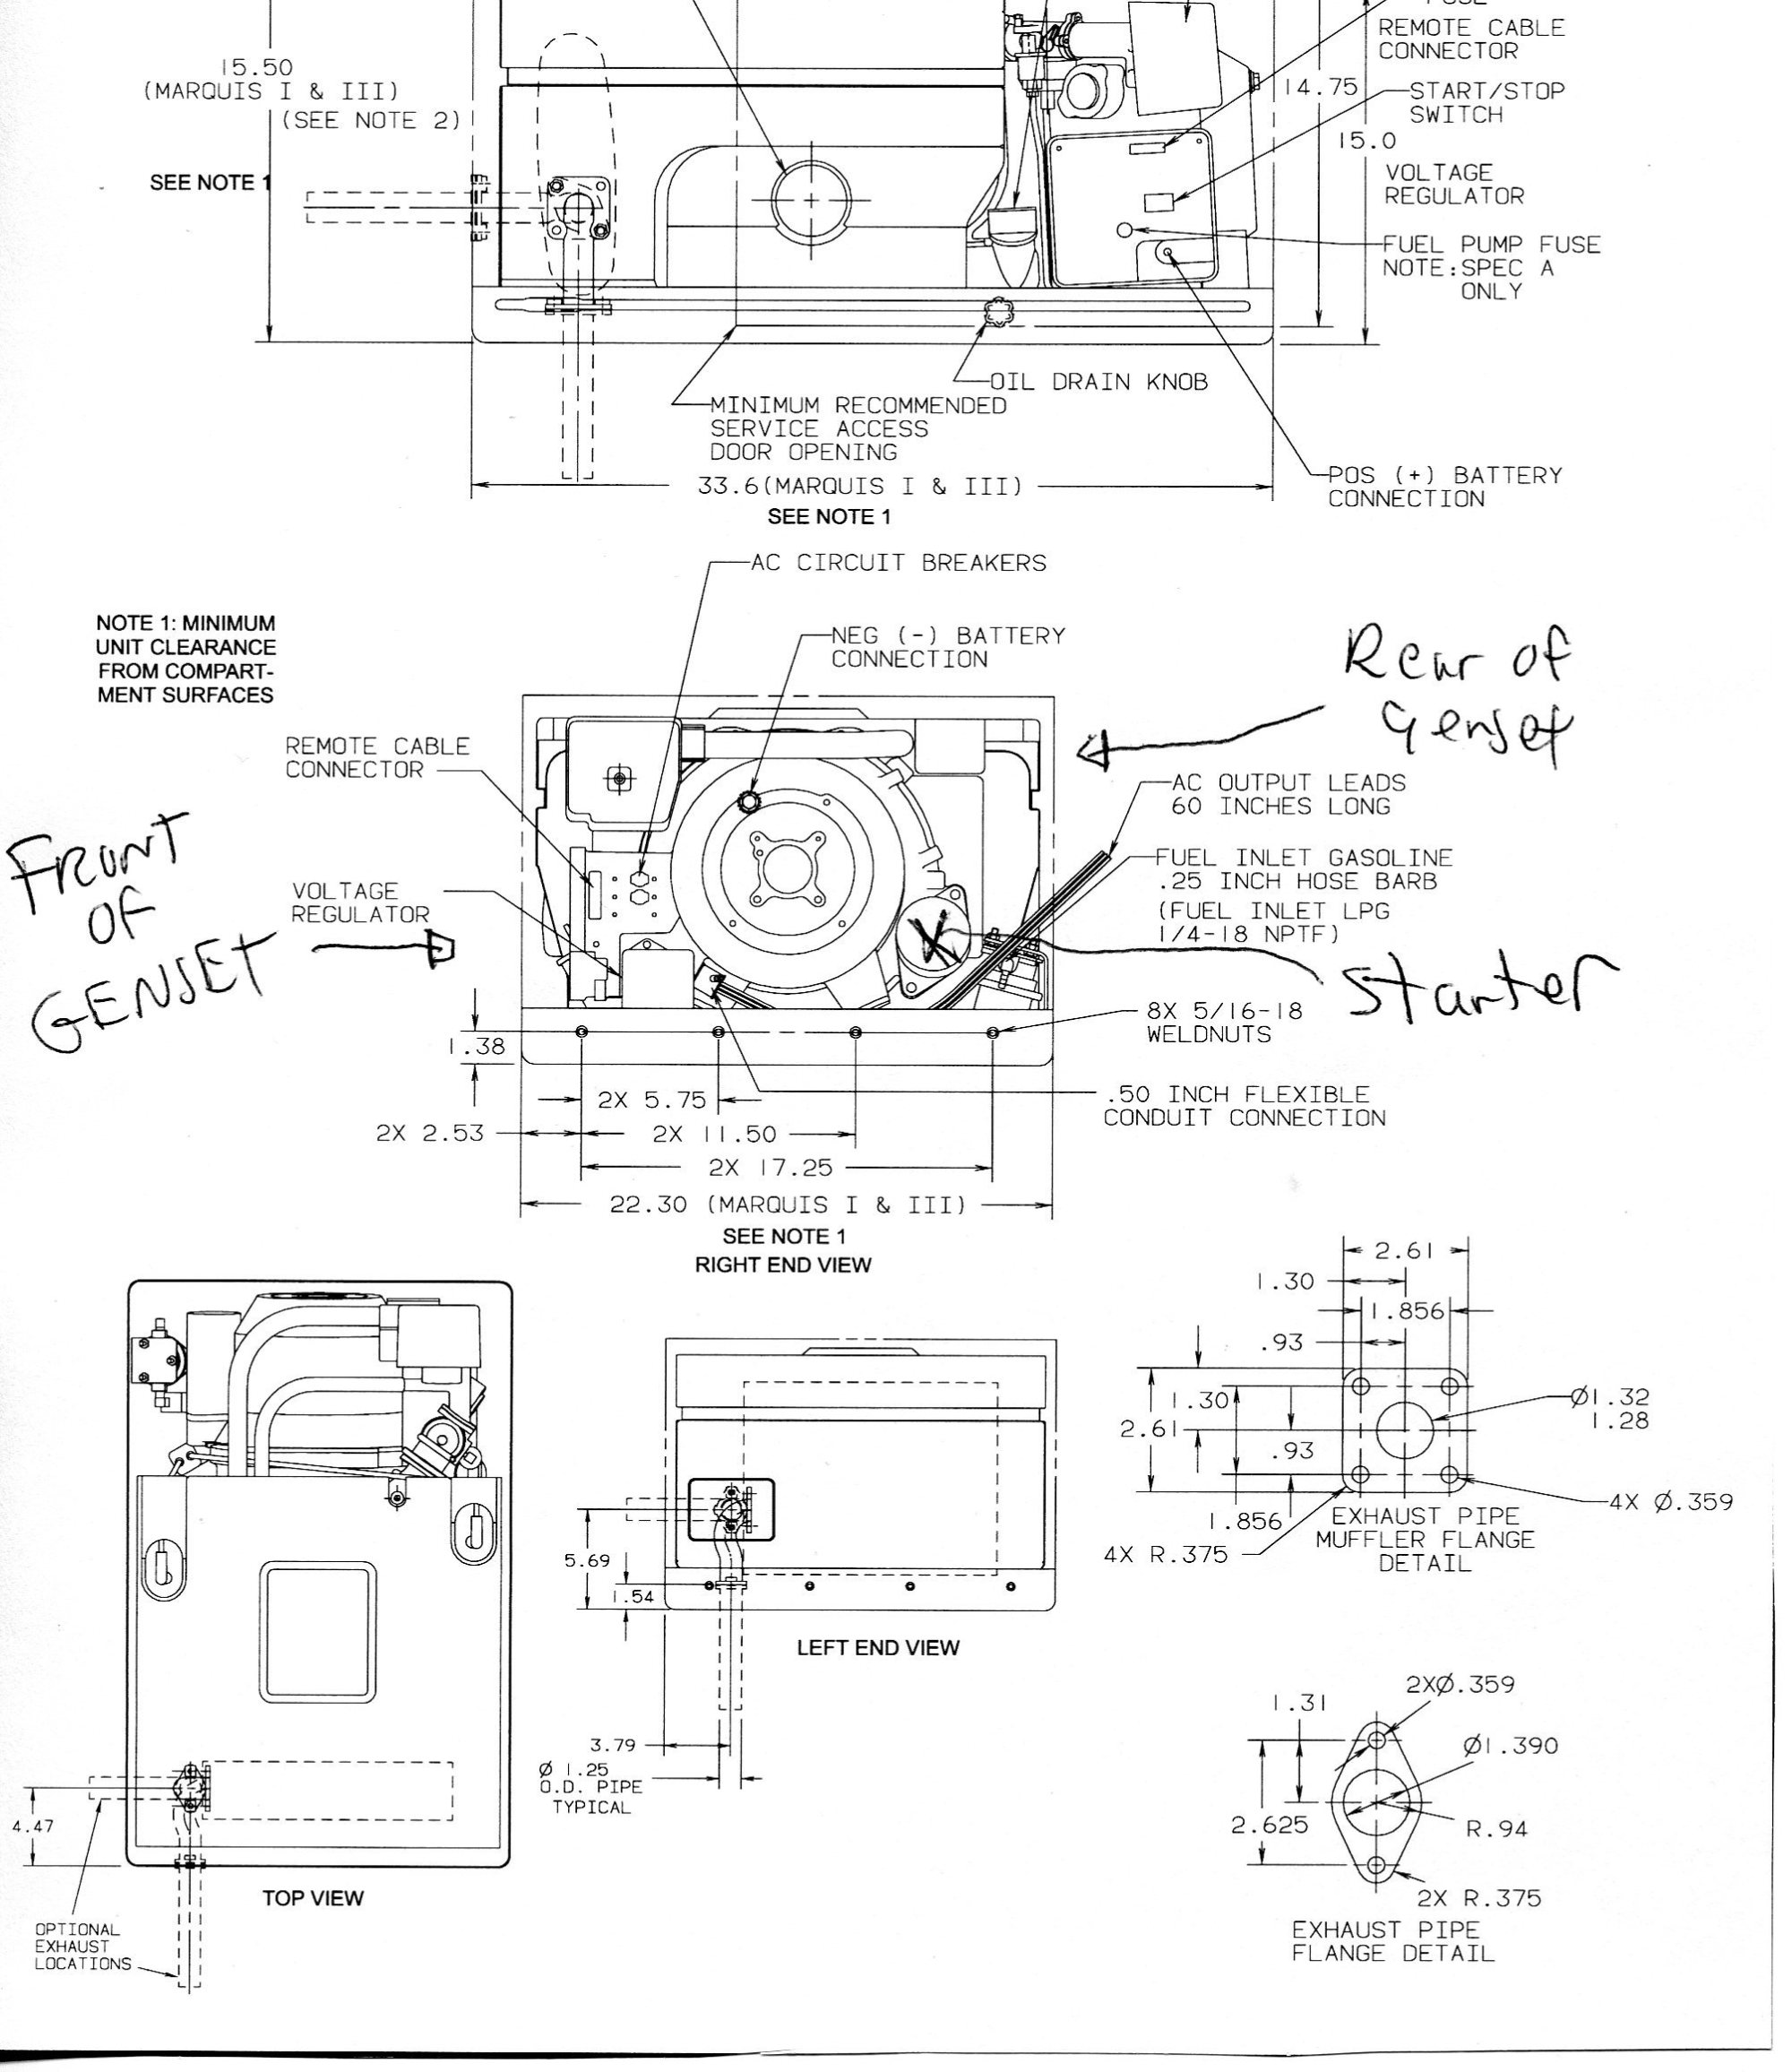 hight resolution of  wiring diagram opensource drawing at getdrawings com free for personal use on internet